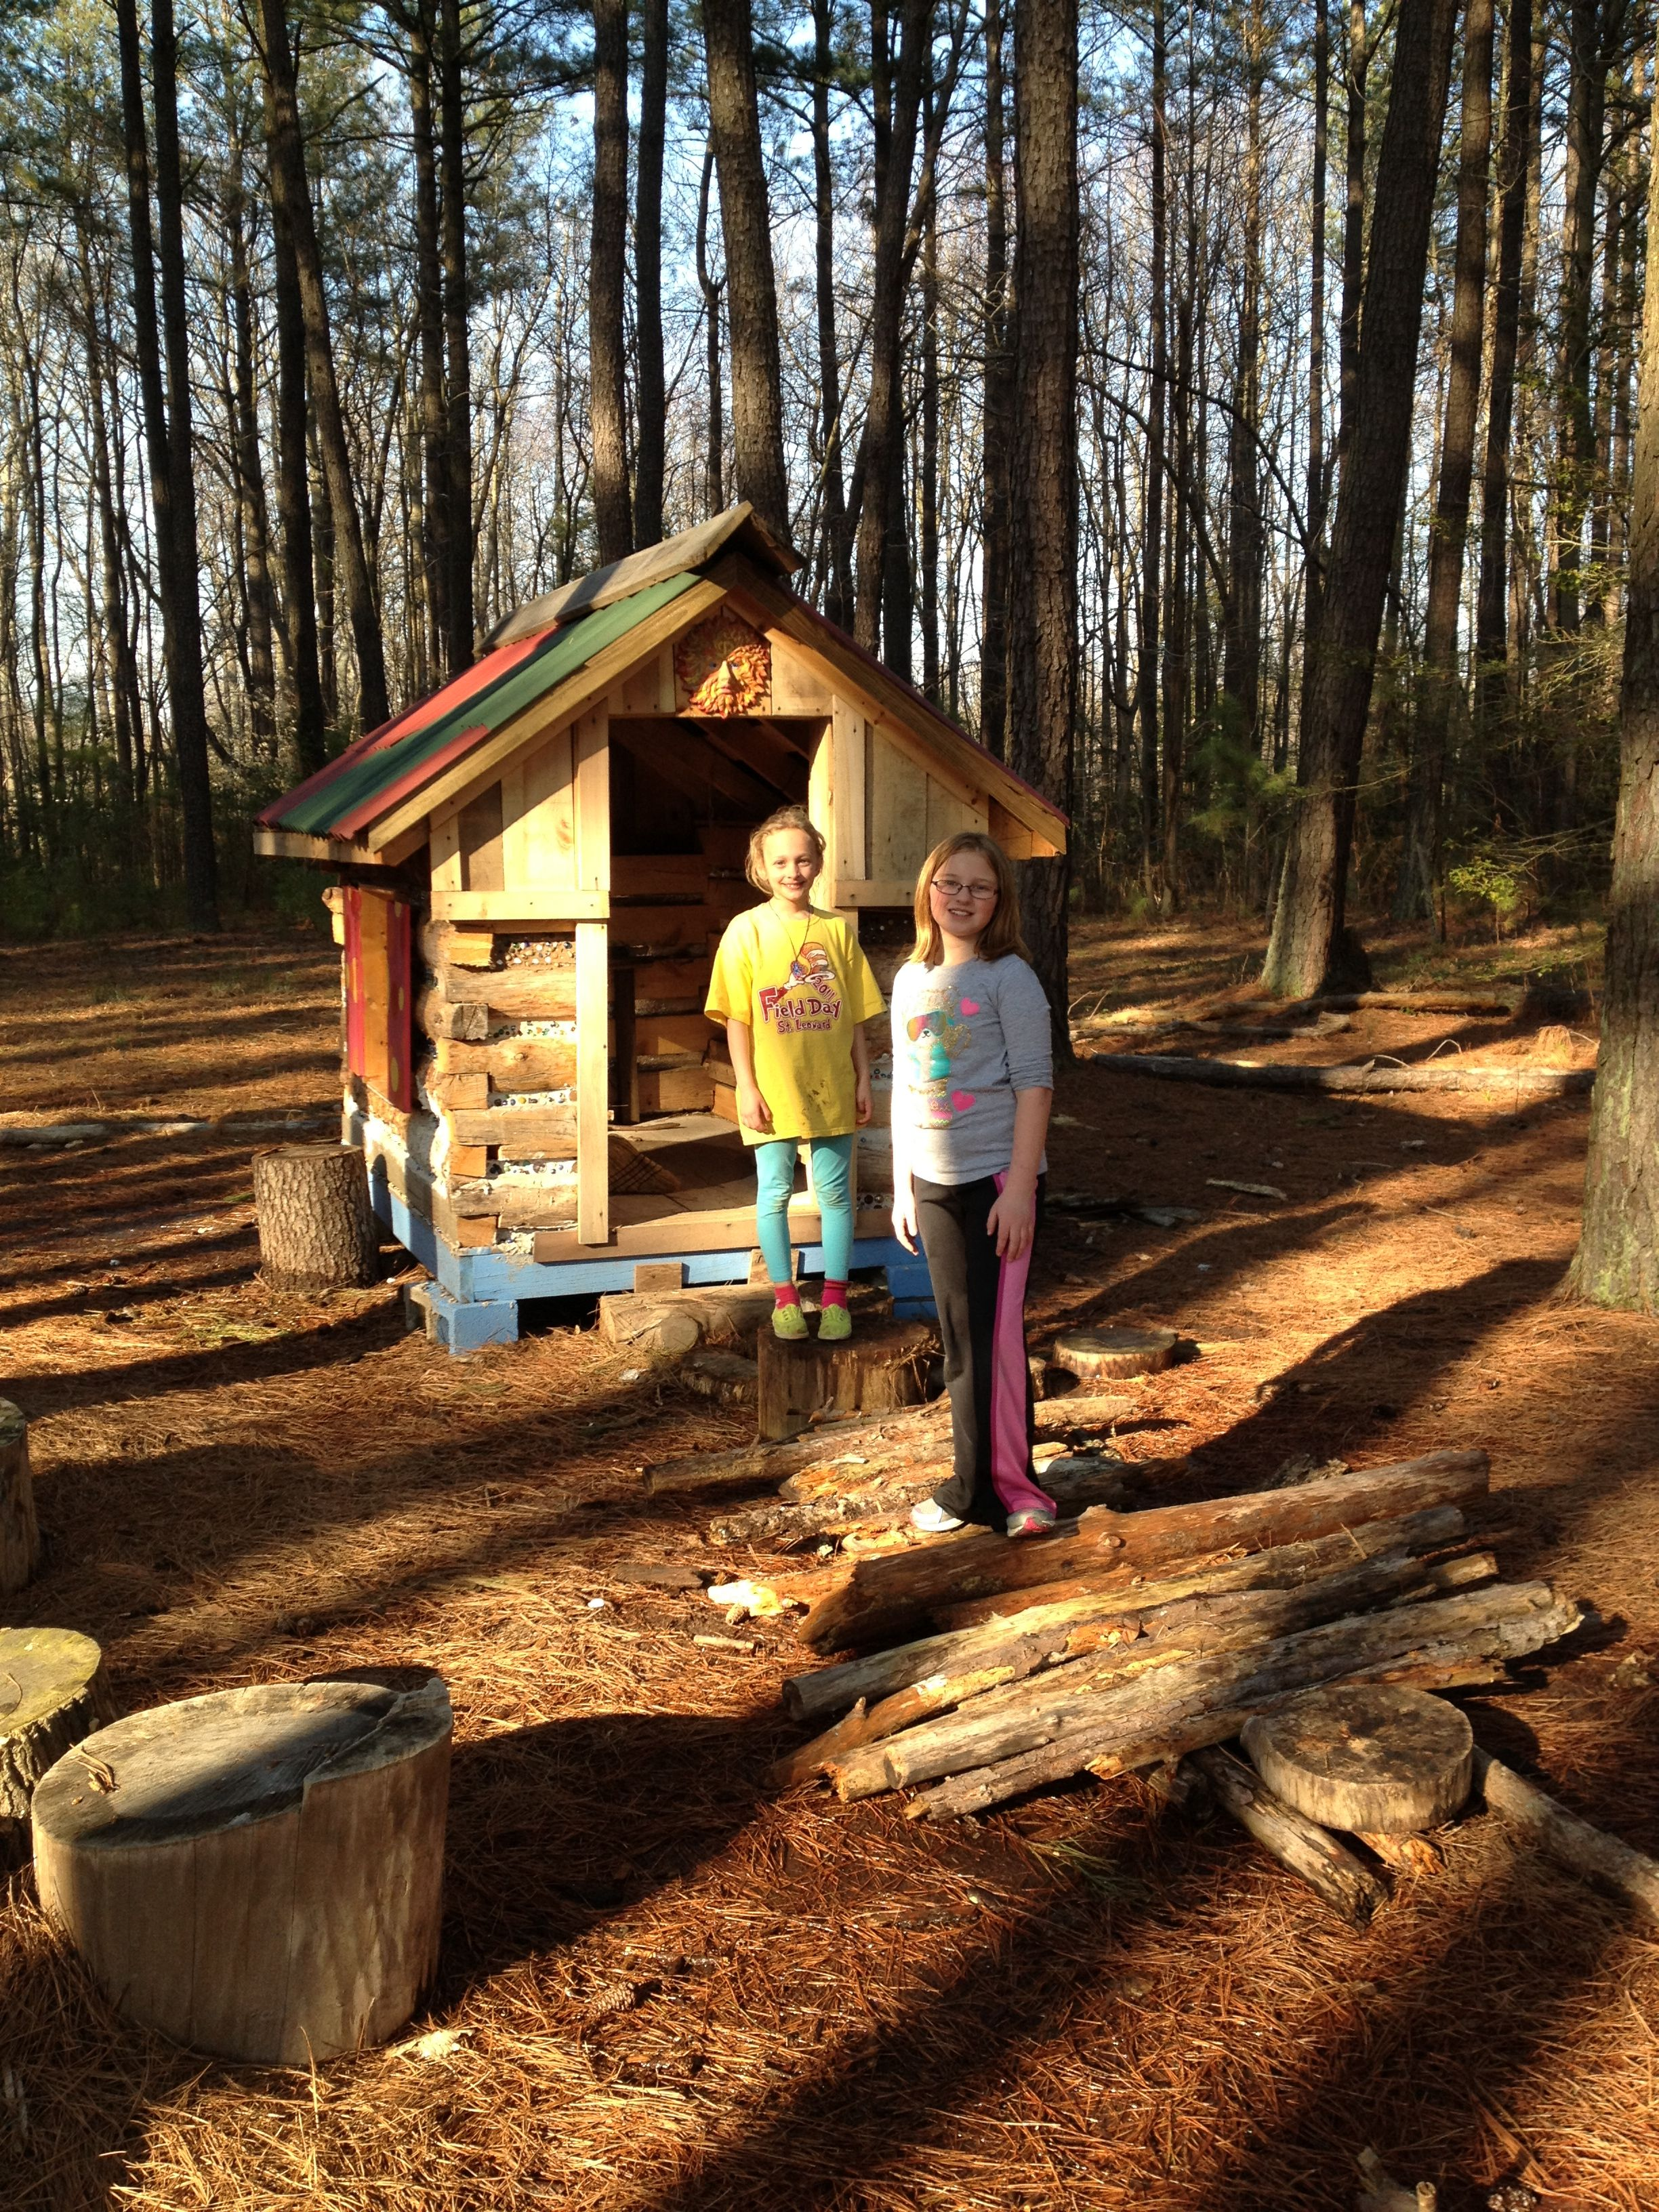 One of several playhouses built by our middle school summer campers ...